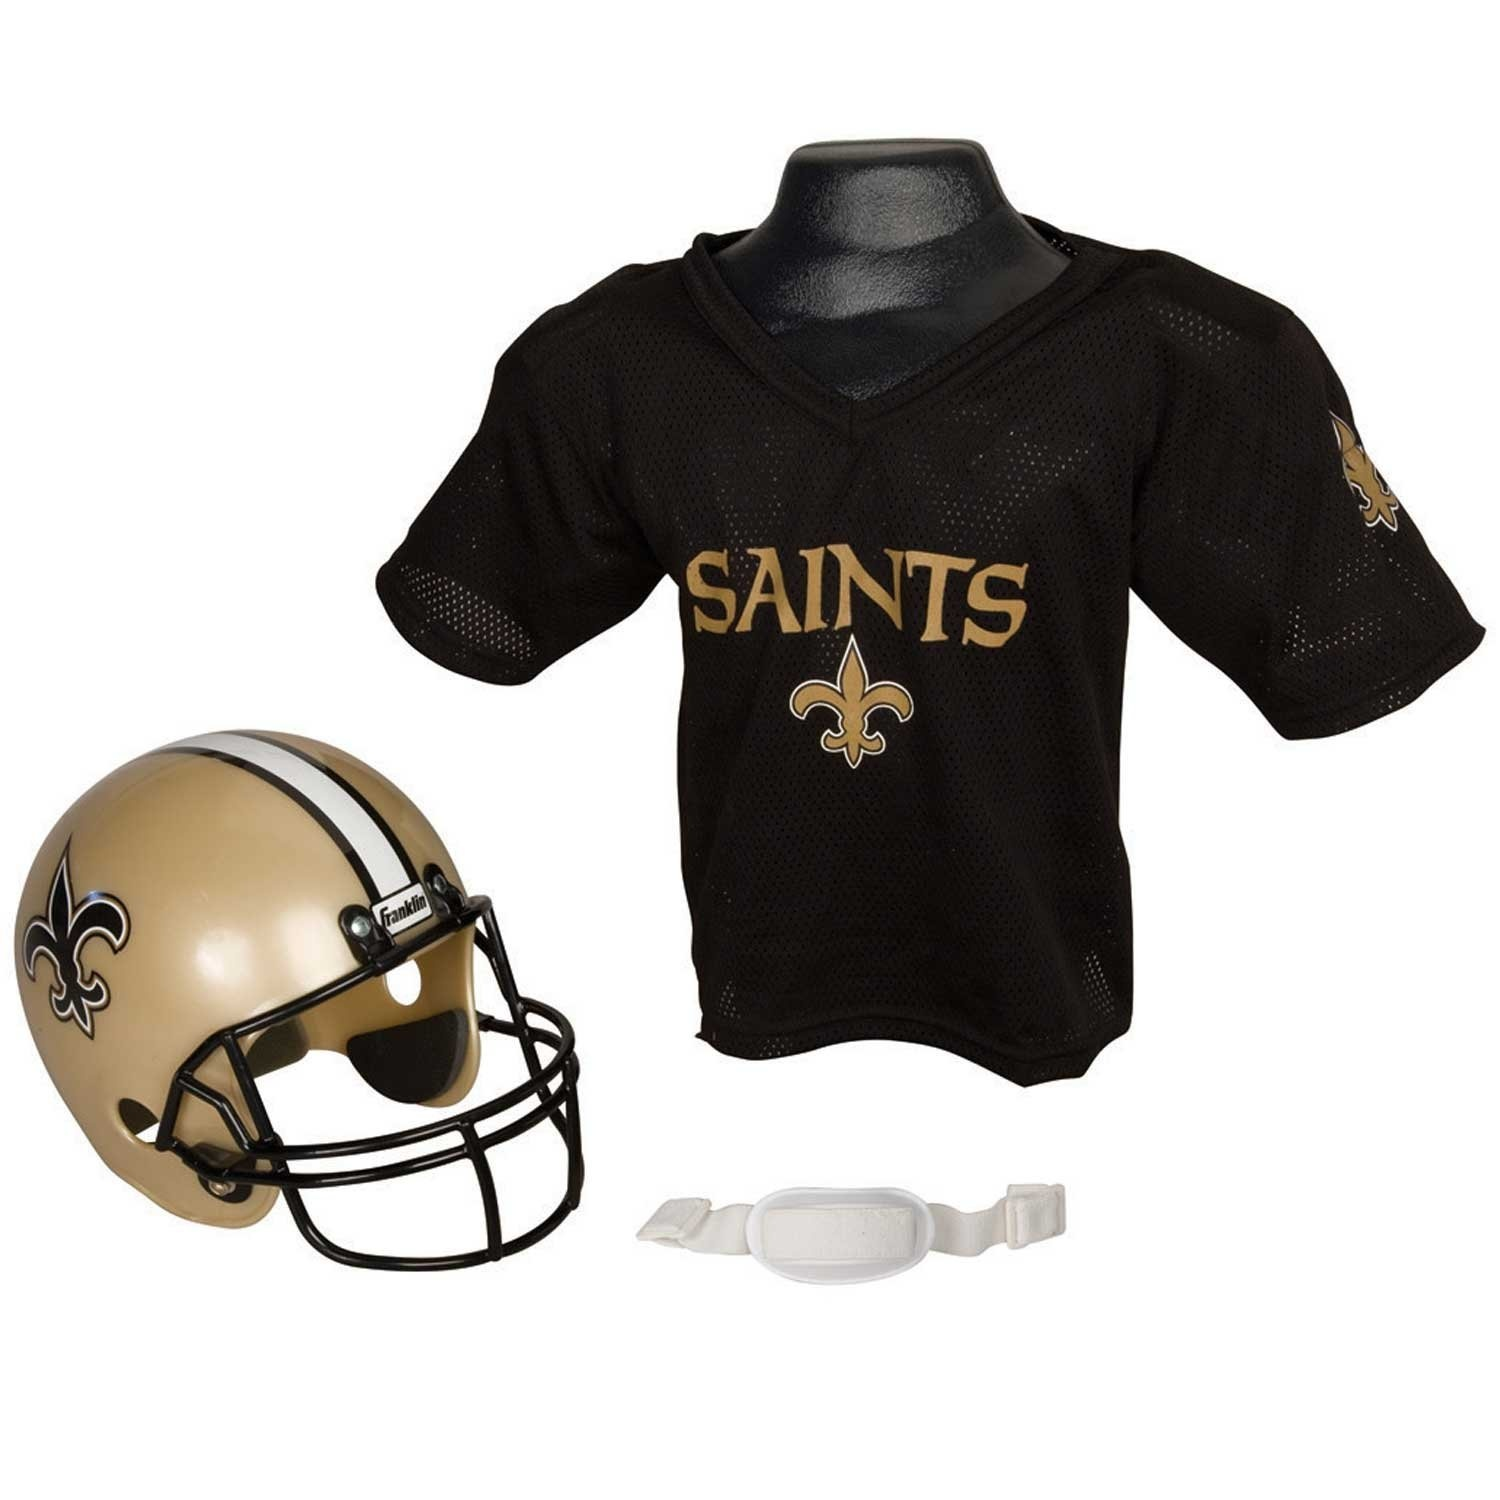 de1534bcbcc NFL New Orleans Saints Replica Youth Helmet and Jersey Set by ...